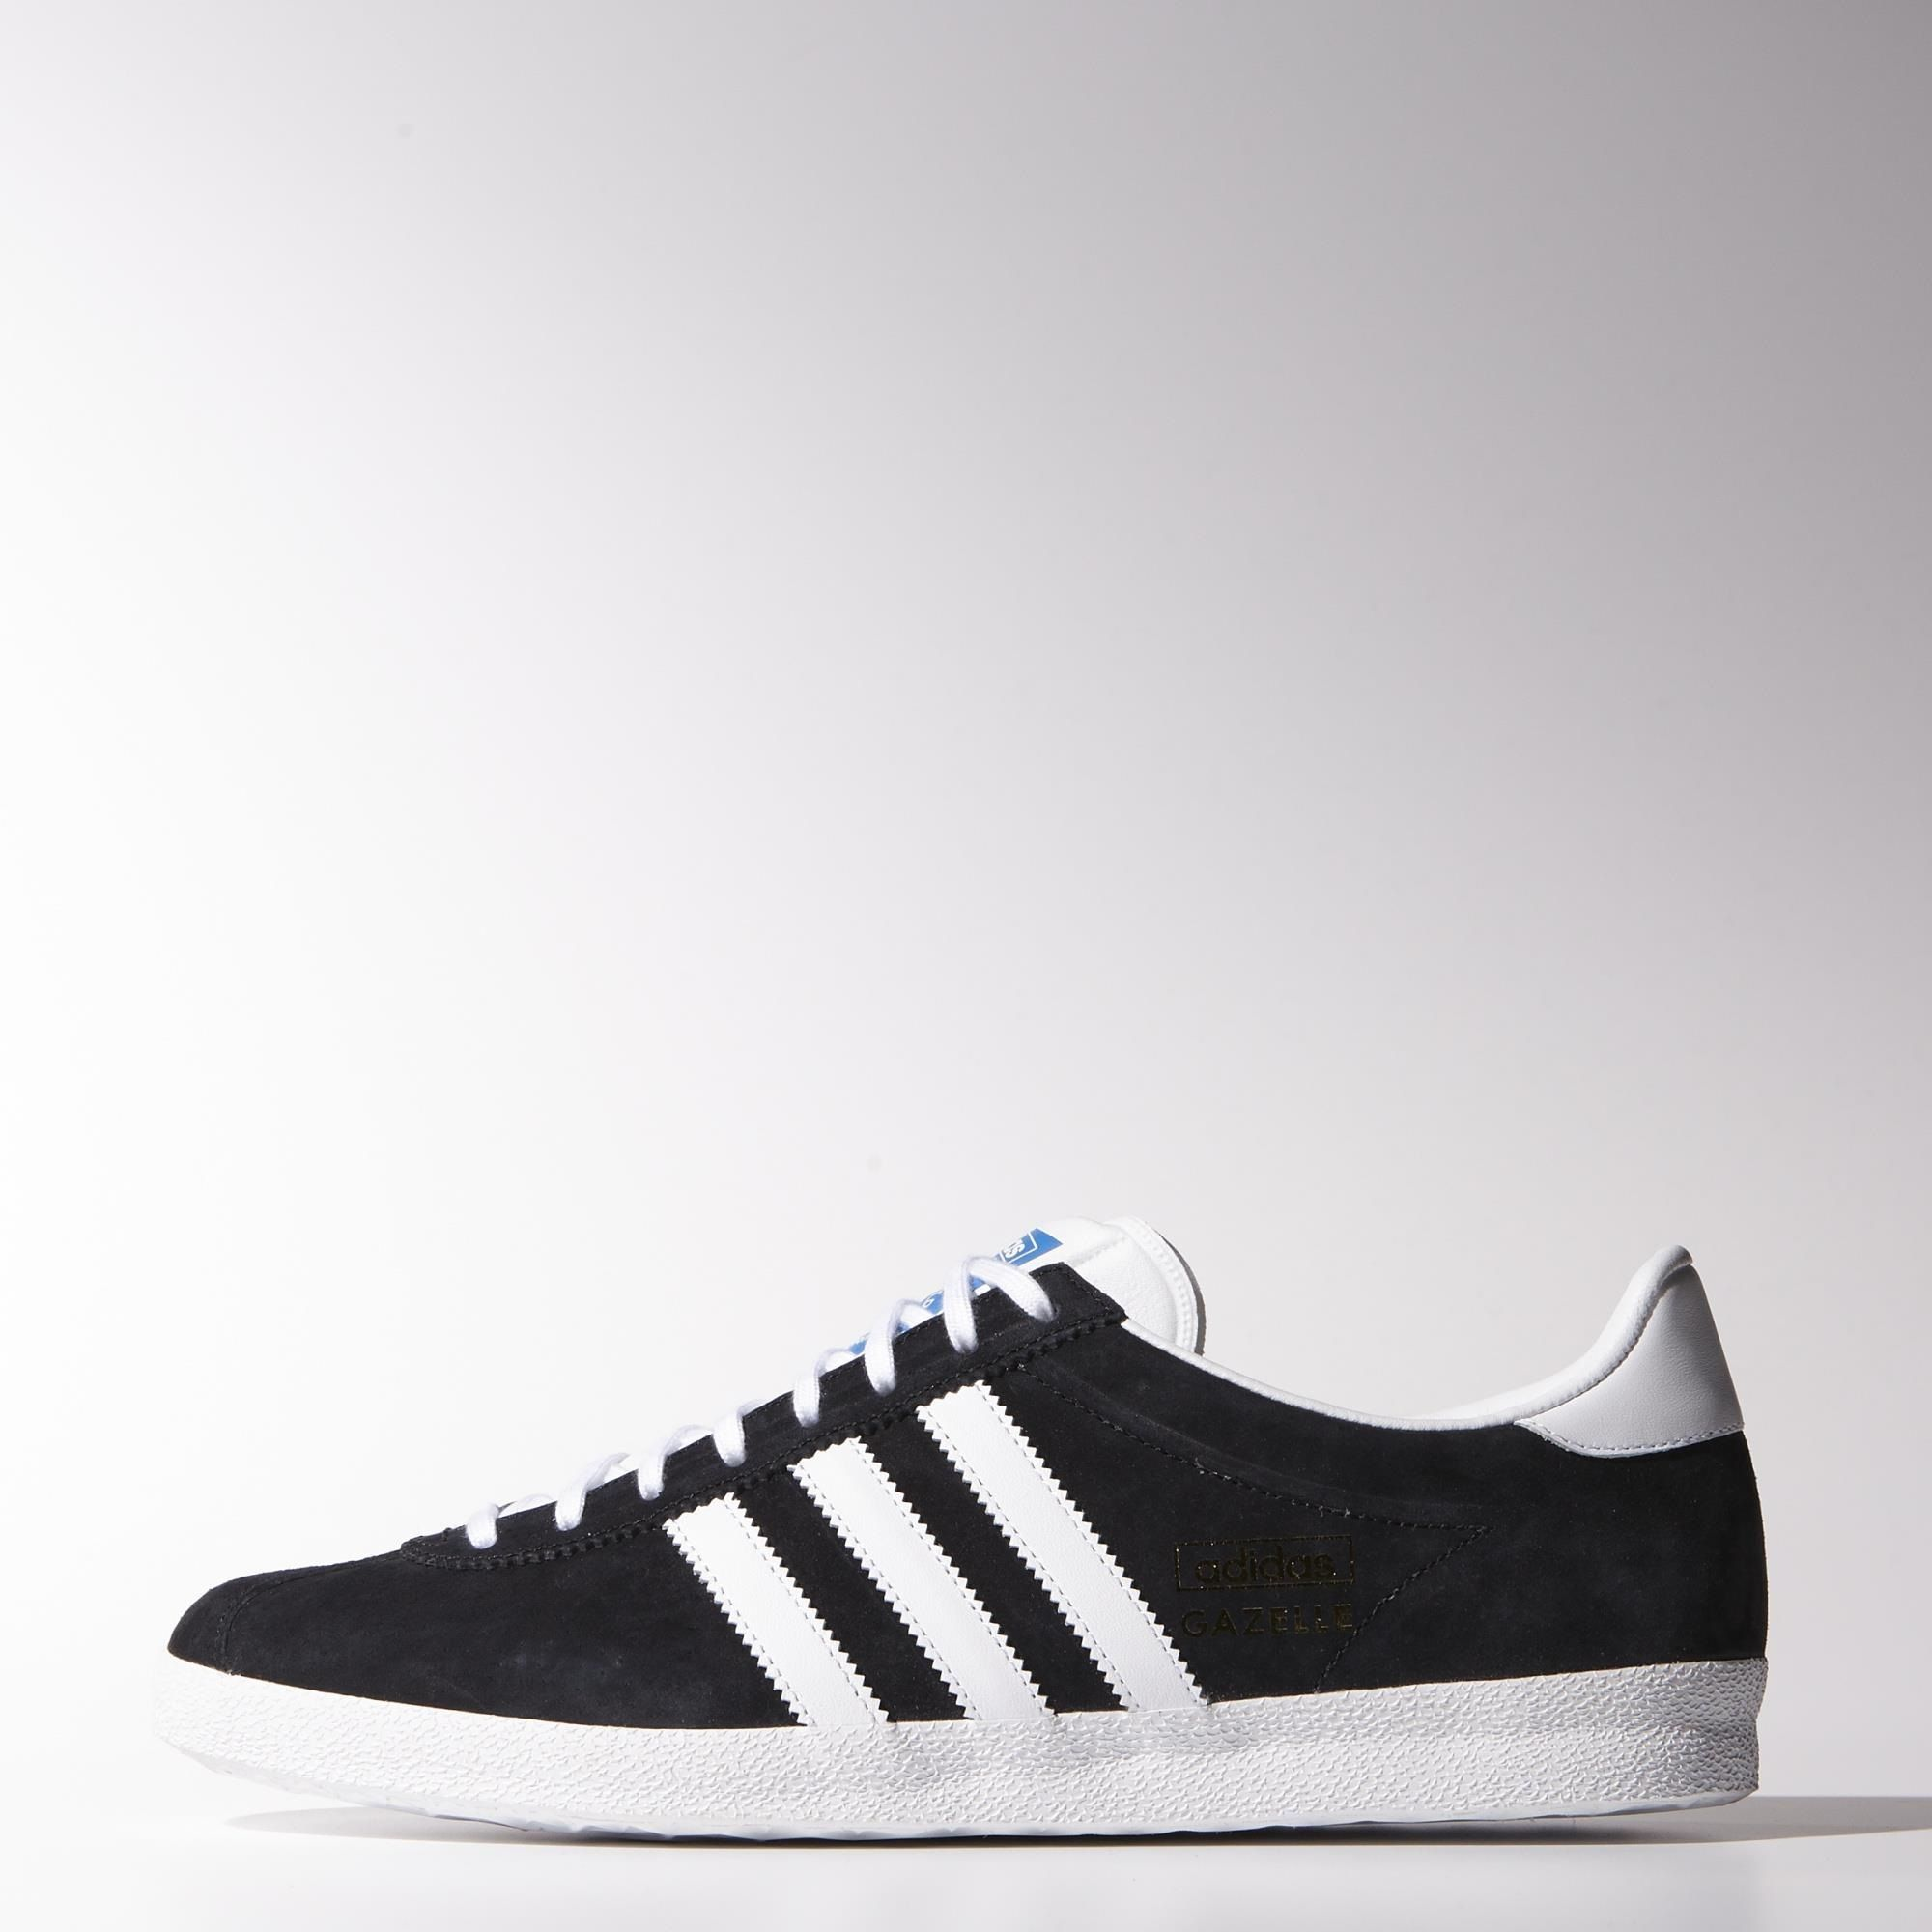 Chaussures Gazelle OG - Night Flash adidas | adidas France